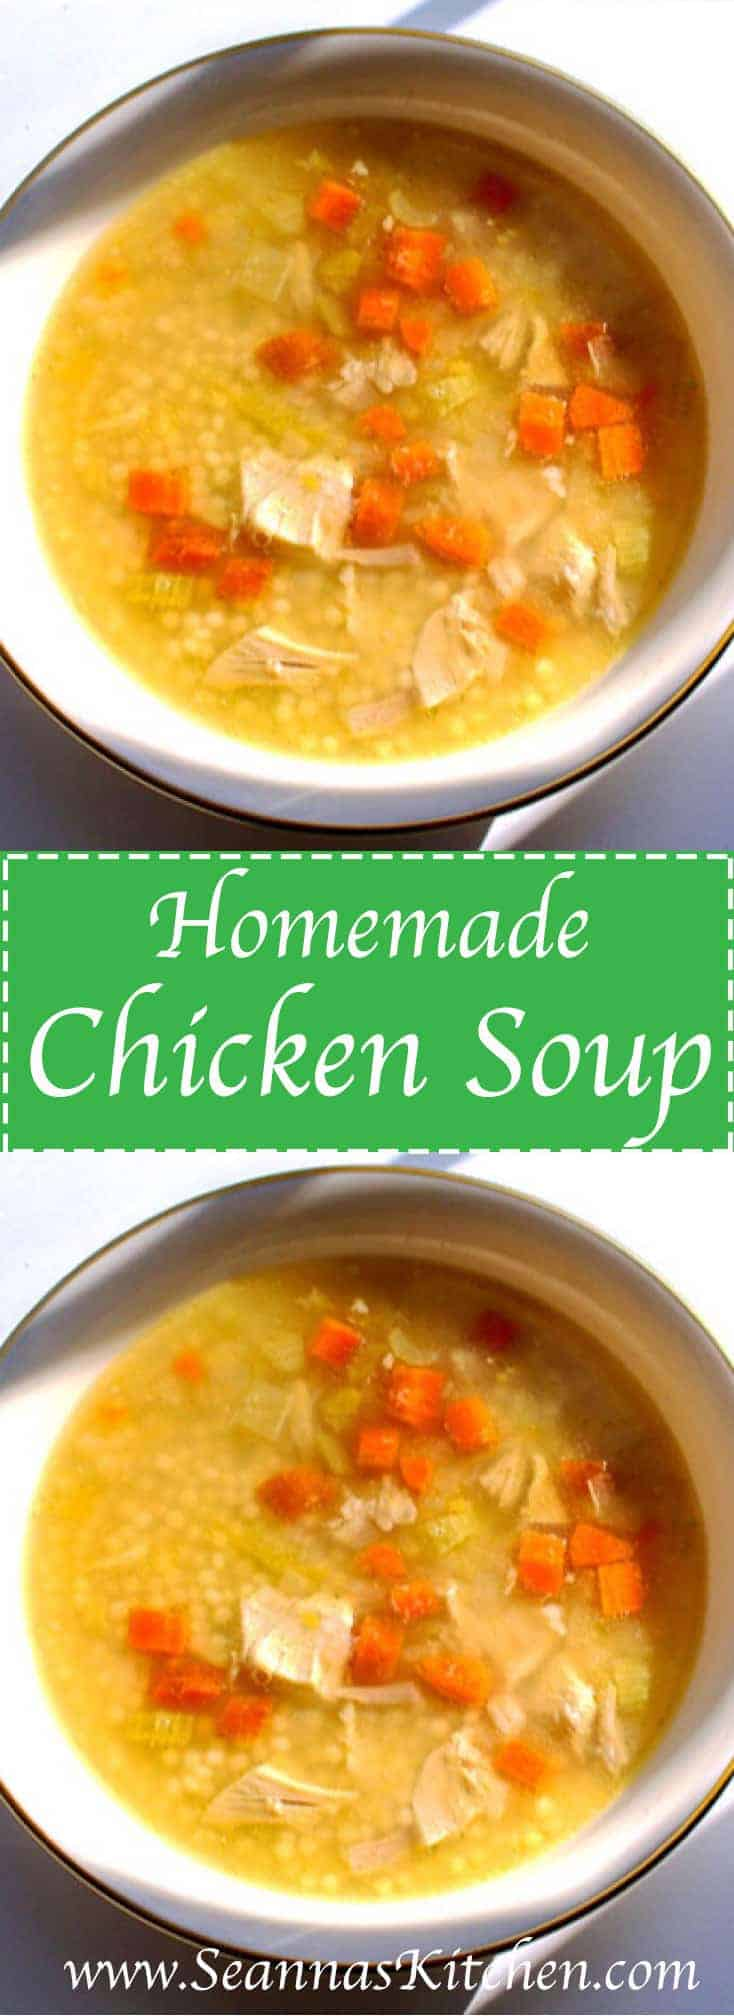 Chicken Soup Recipe -Absolutely the BEST! Made with fresh chicken, carrots, celery, and onions. We hope you'll try this simple healthy recipe | SeannasKitchen.com